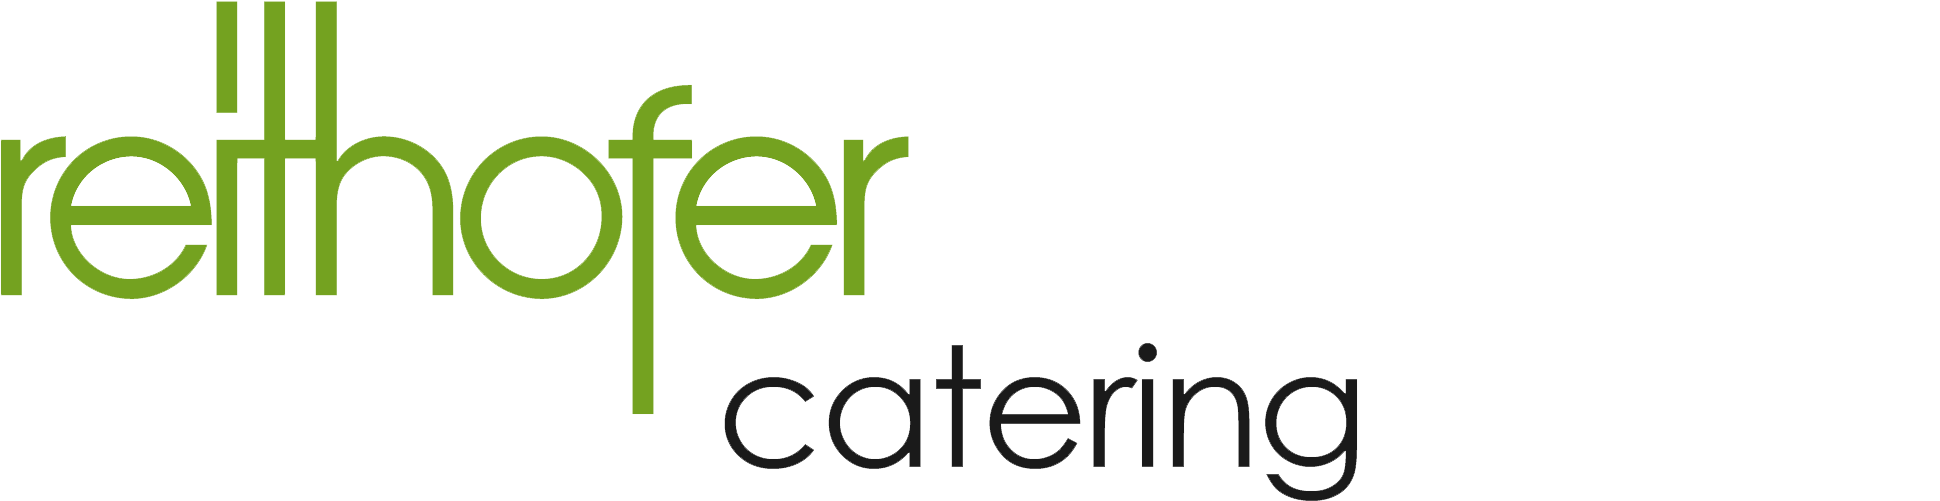 reithofer catering